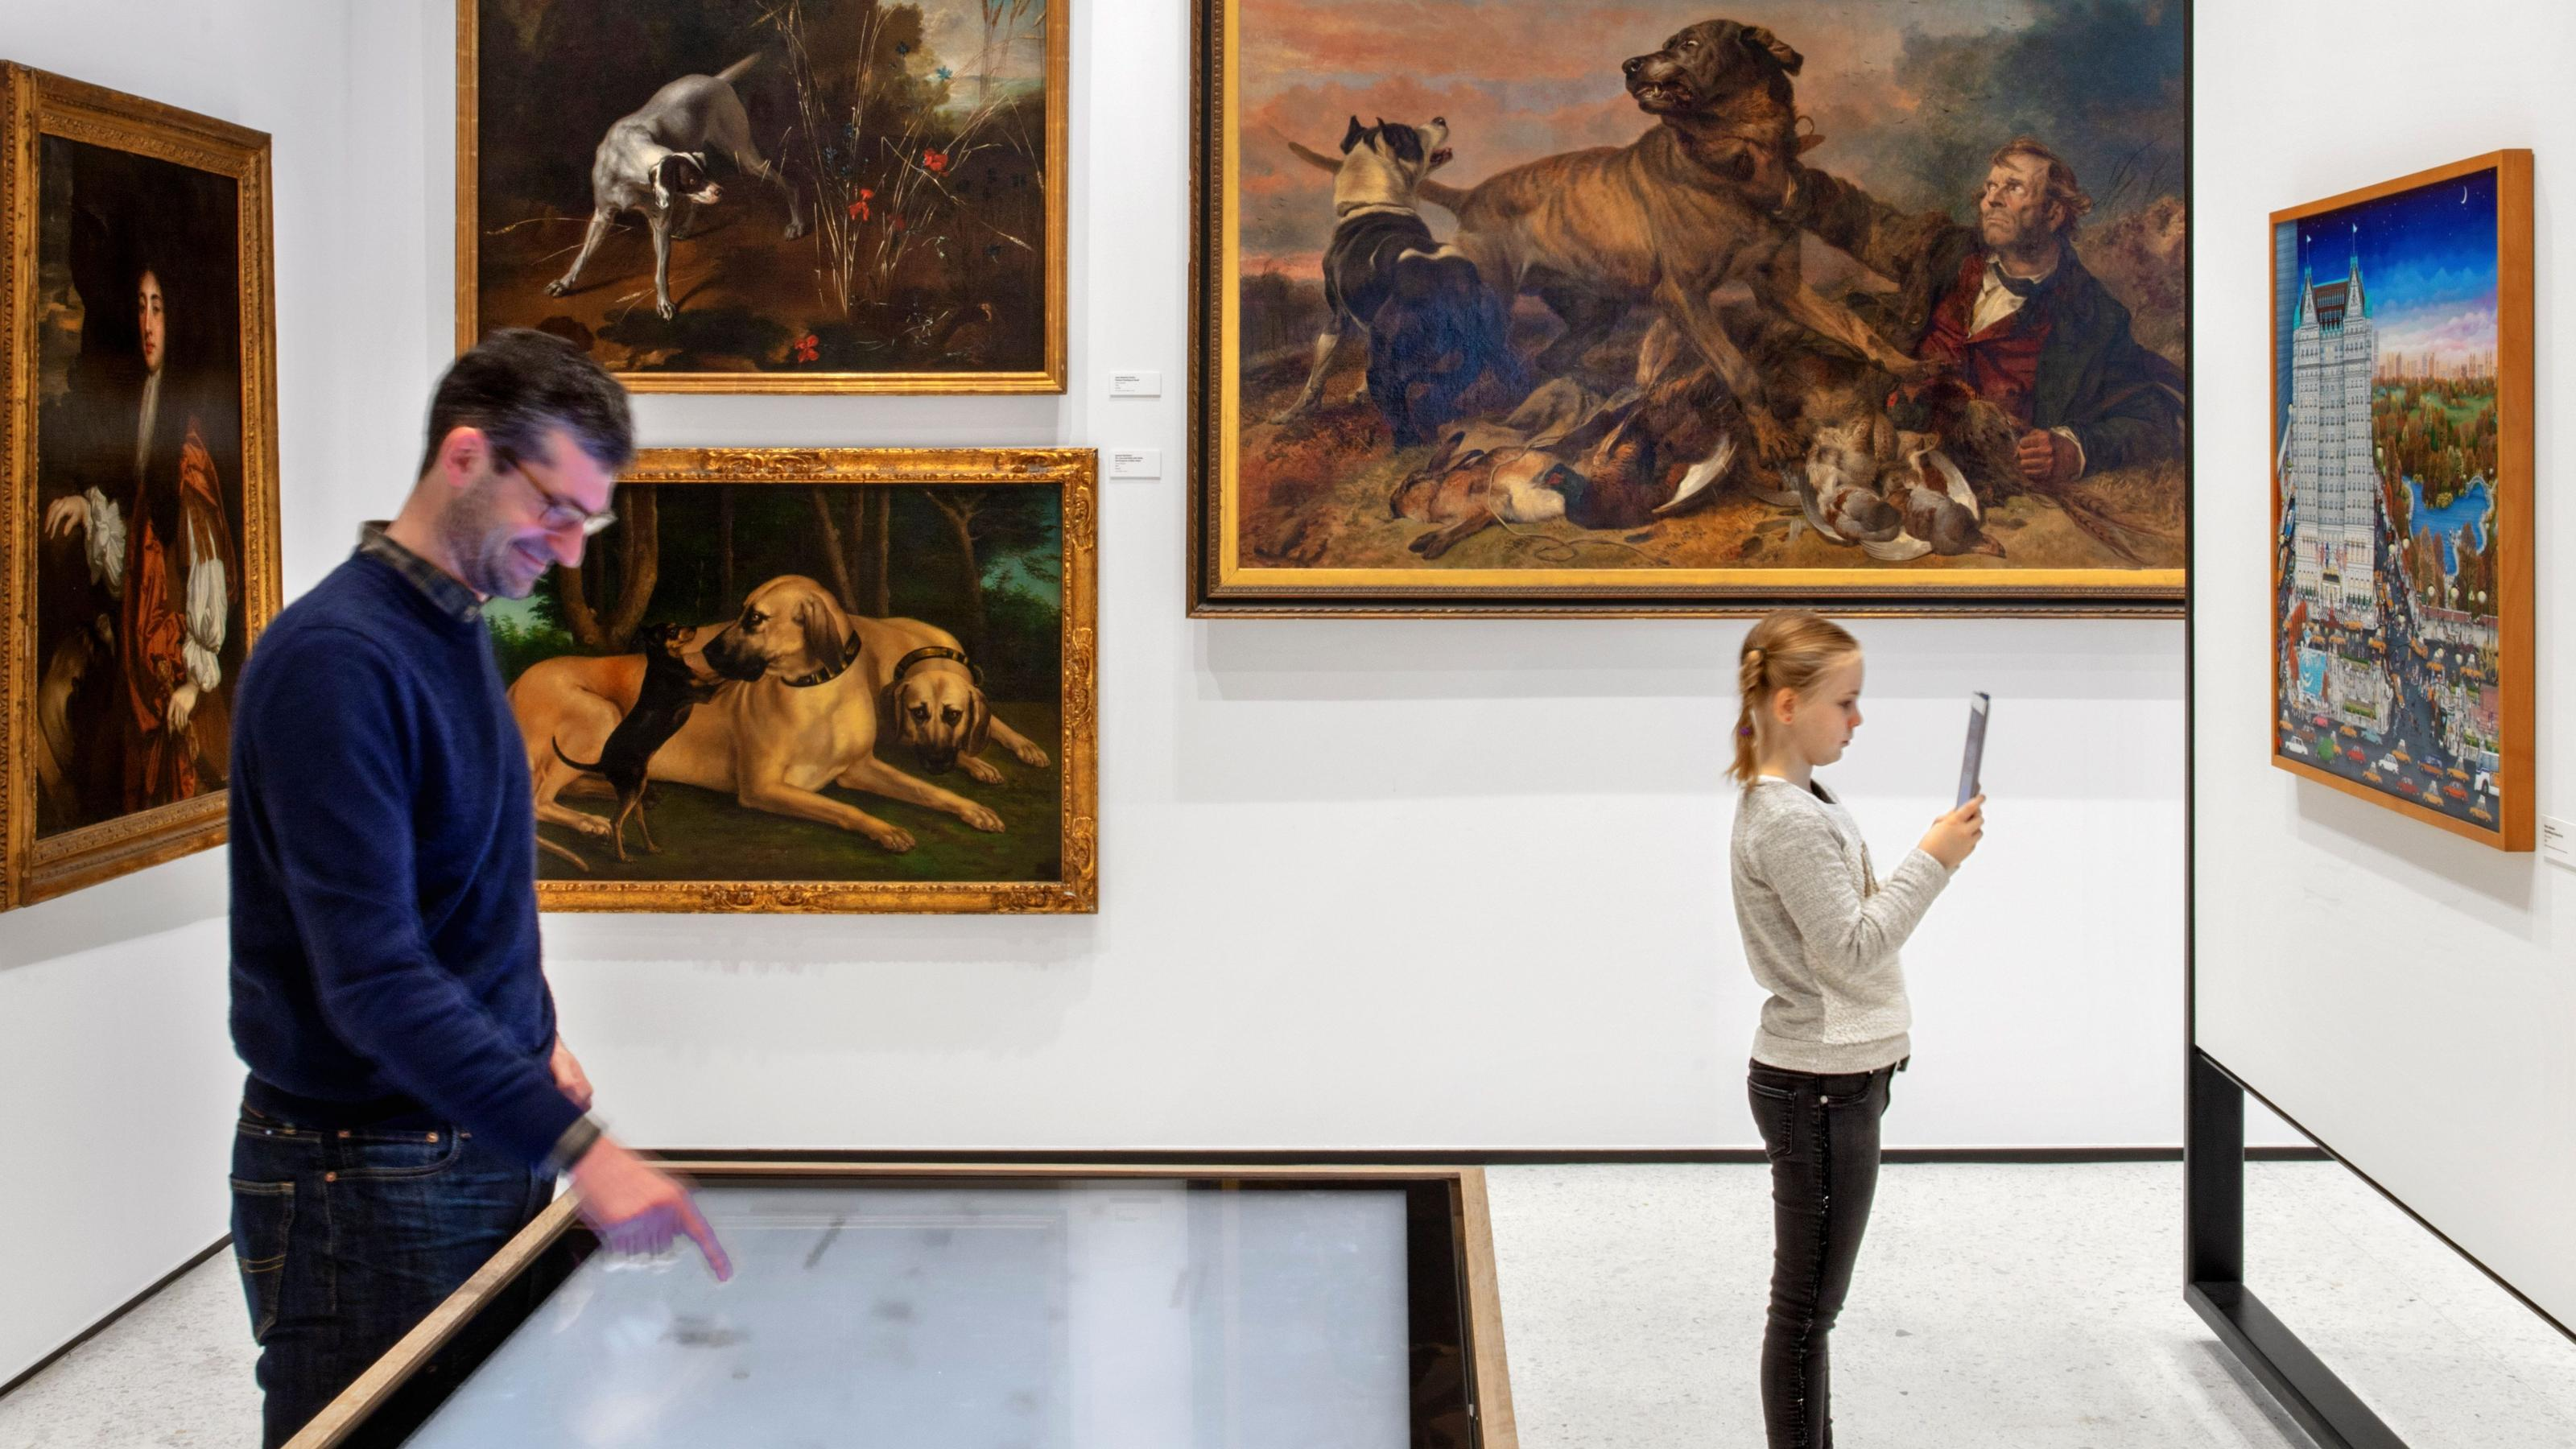 New York's revamped Museum of the Dog makes stodgy canine art fun